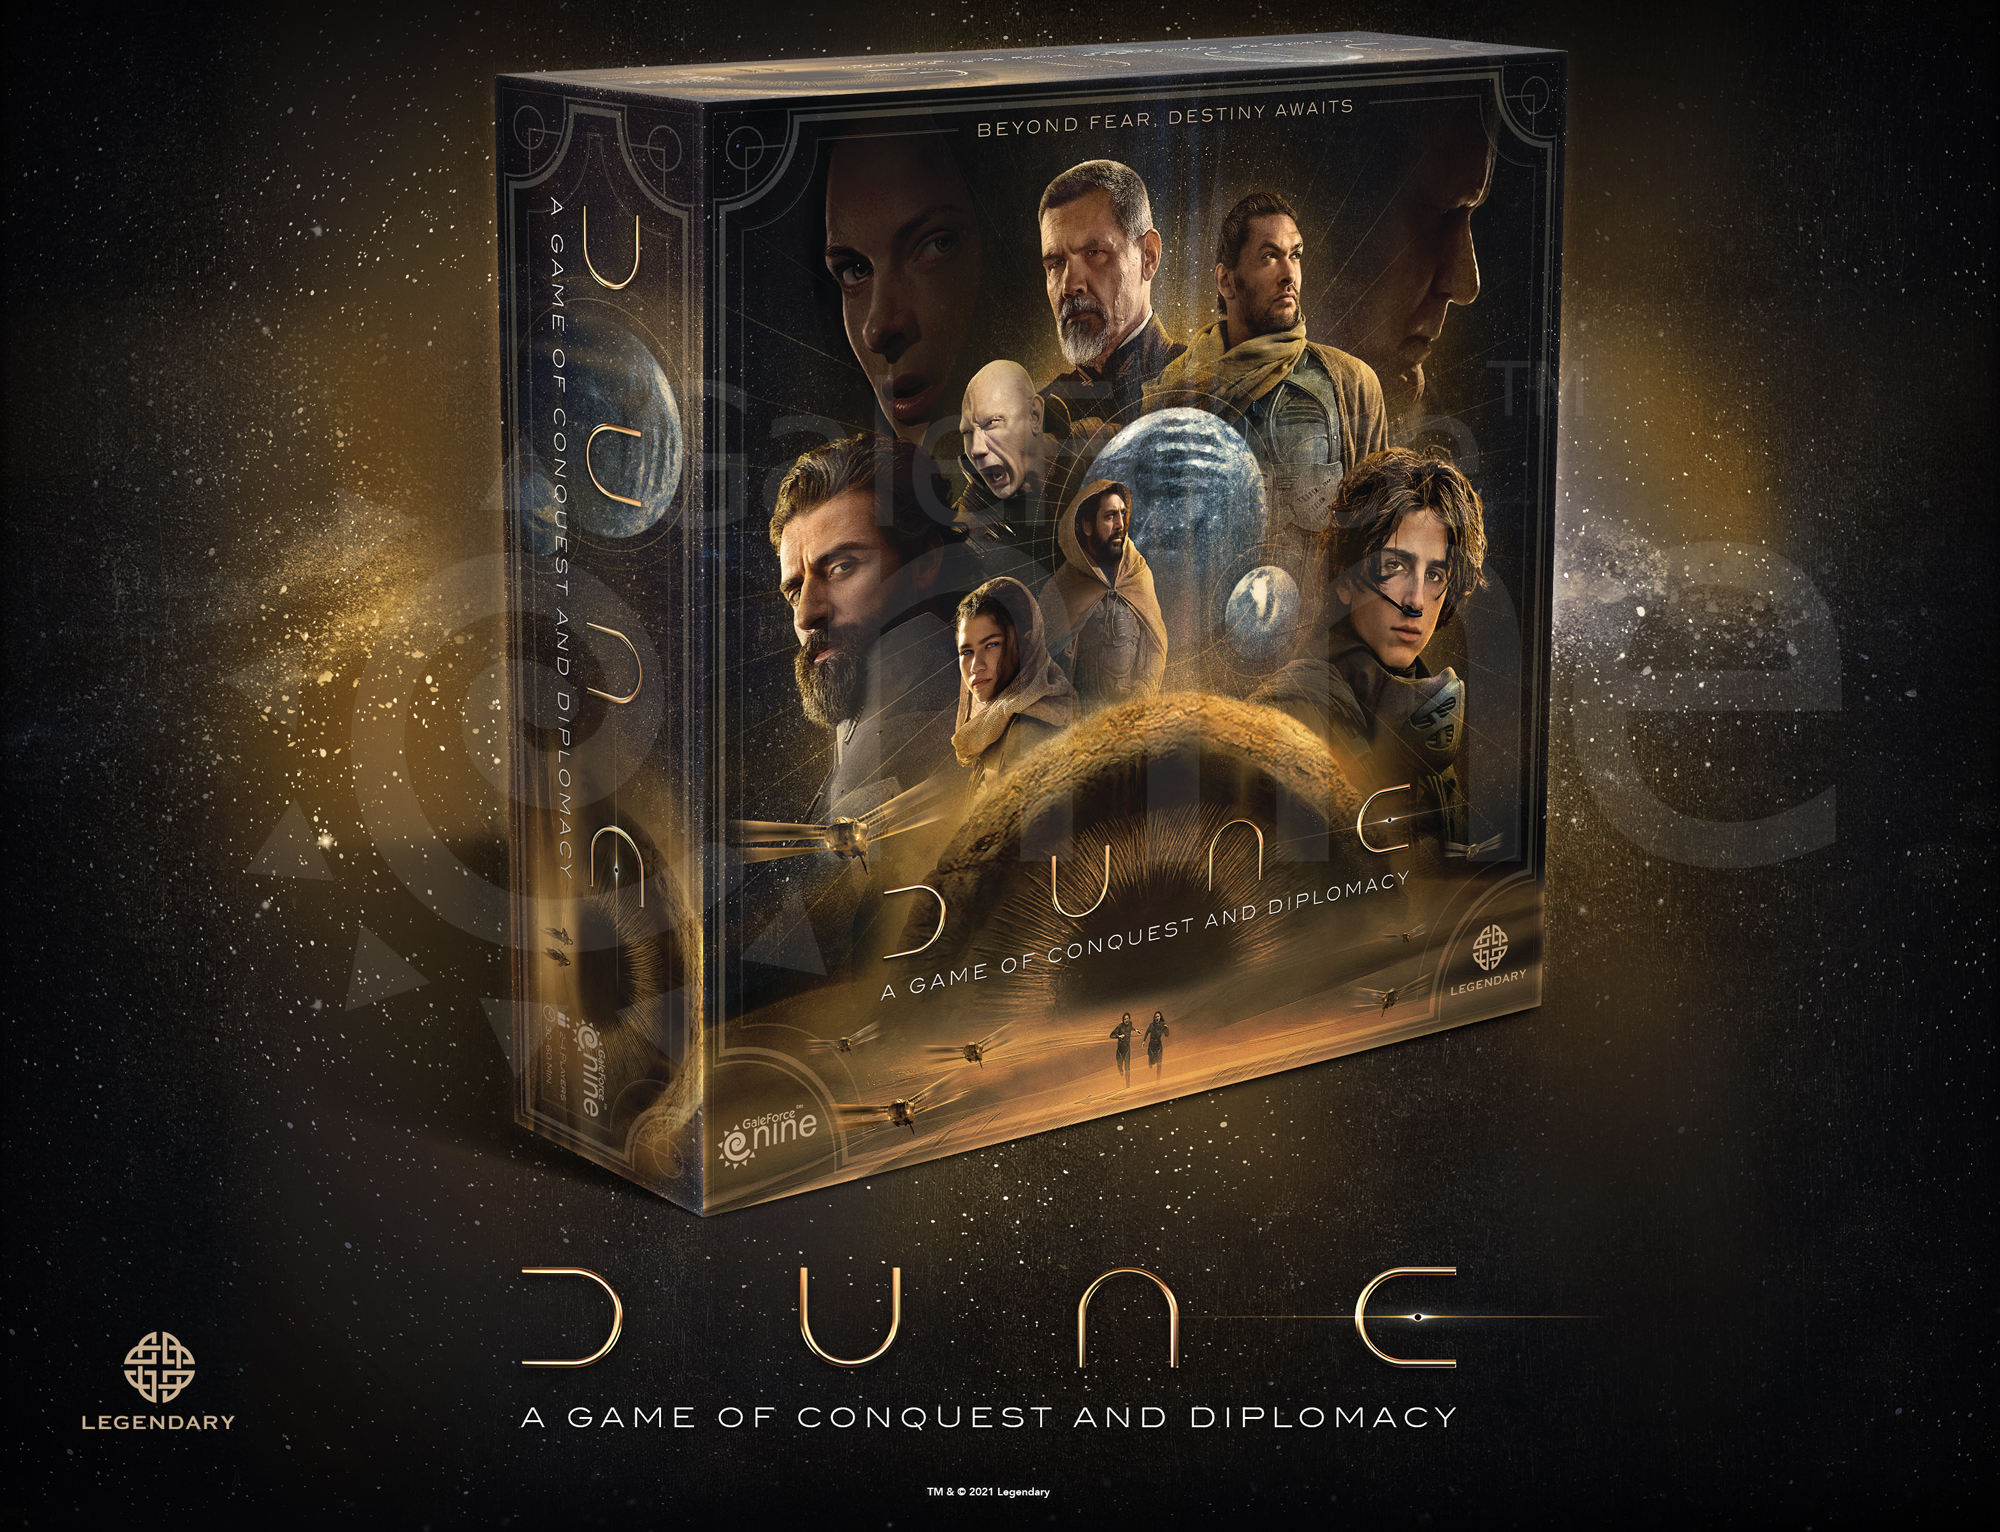 Dune A Game Of Conquest And Diplomacy - Gale Force Nine